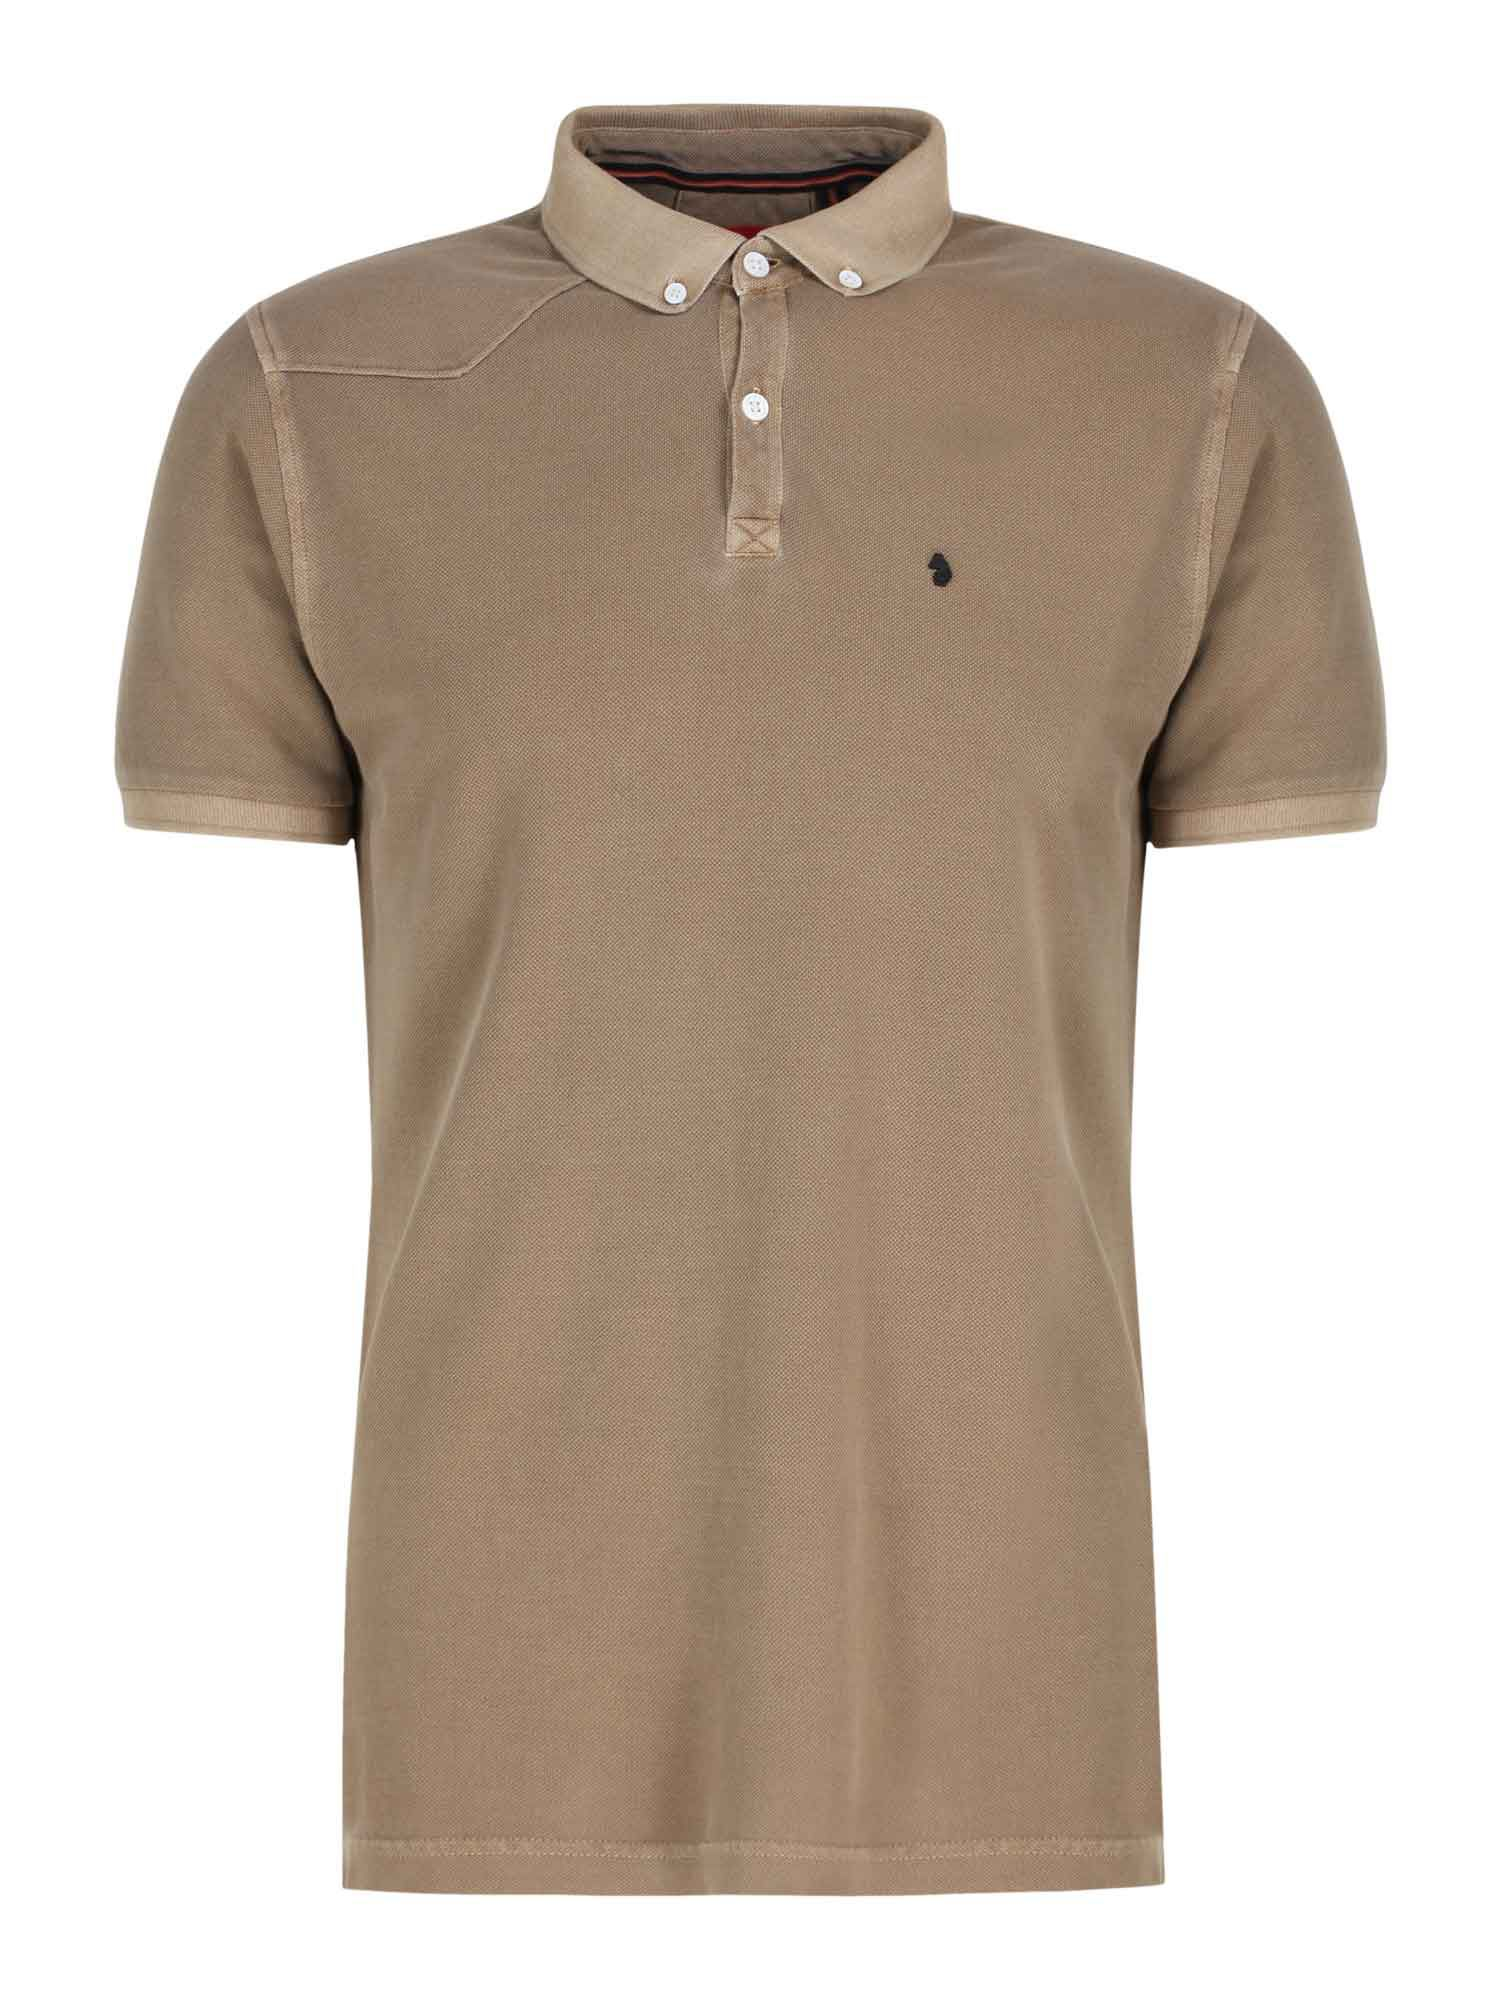 Men's Luke 1977 Basking Garment Dyed Polo Shirt, Sand